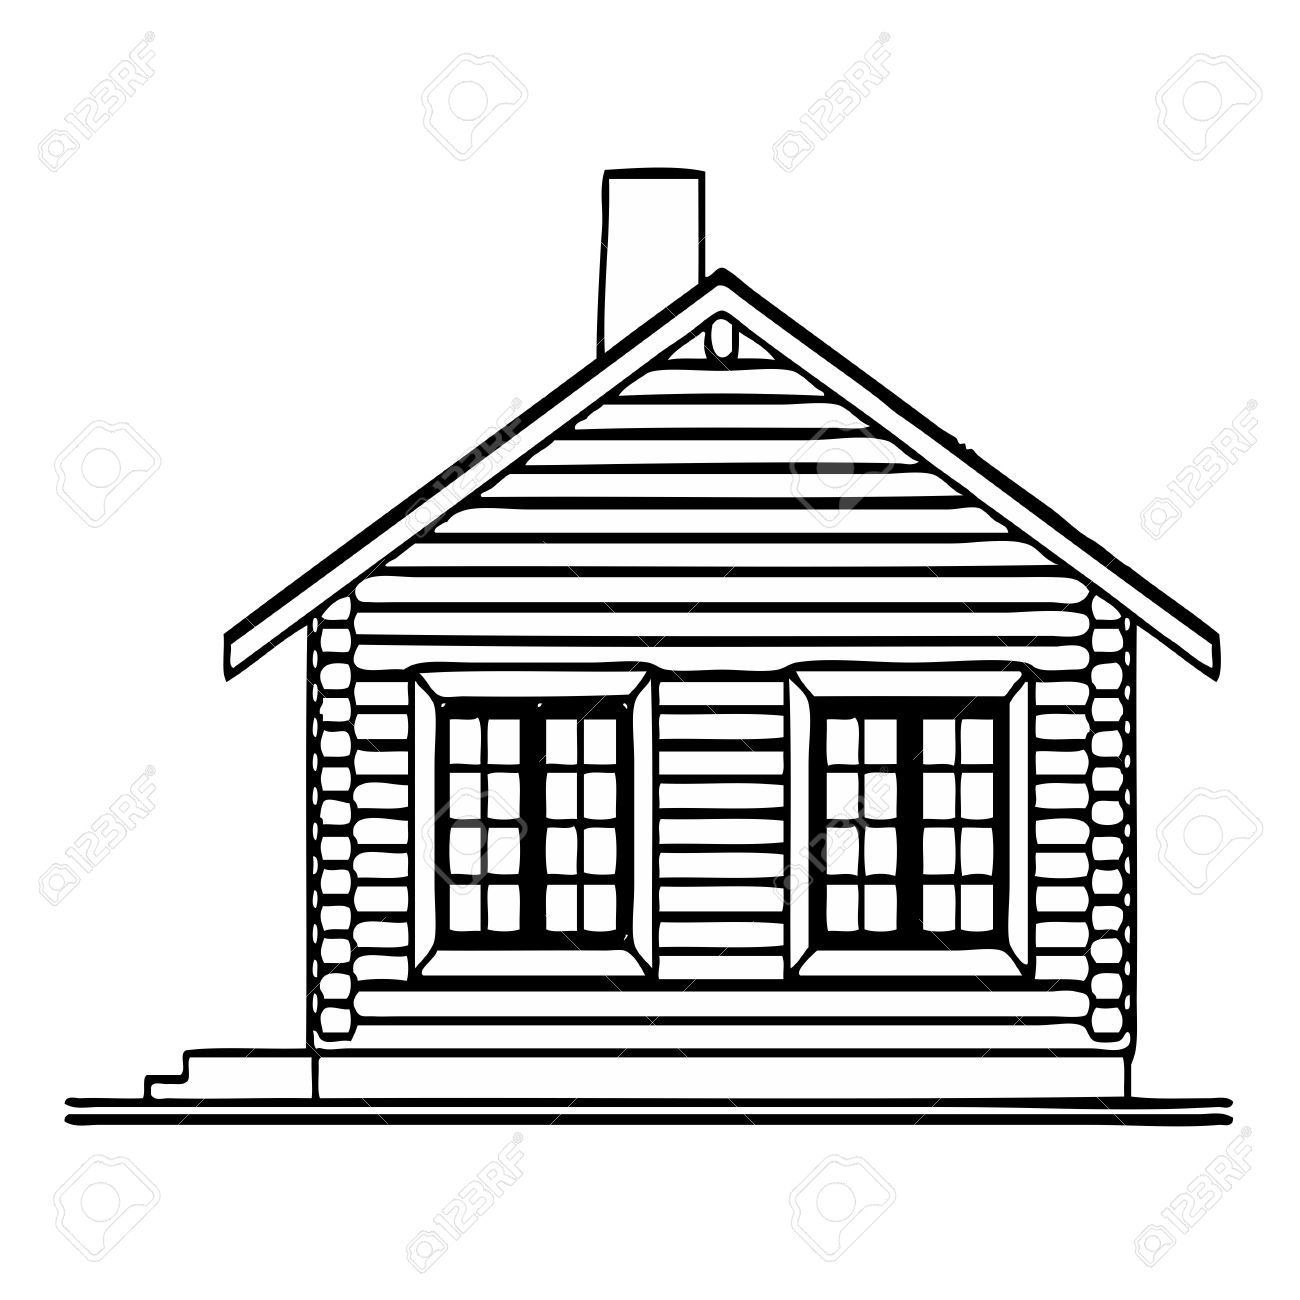 Wooden House Royalty Free Cliparts, Vectors, And Stock Illustration ...